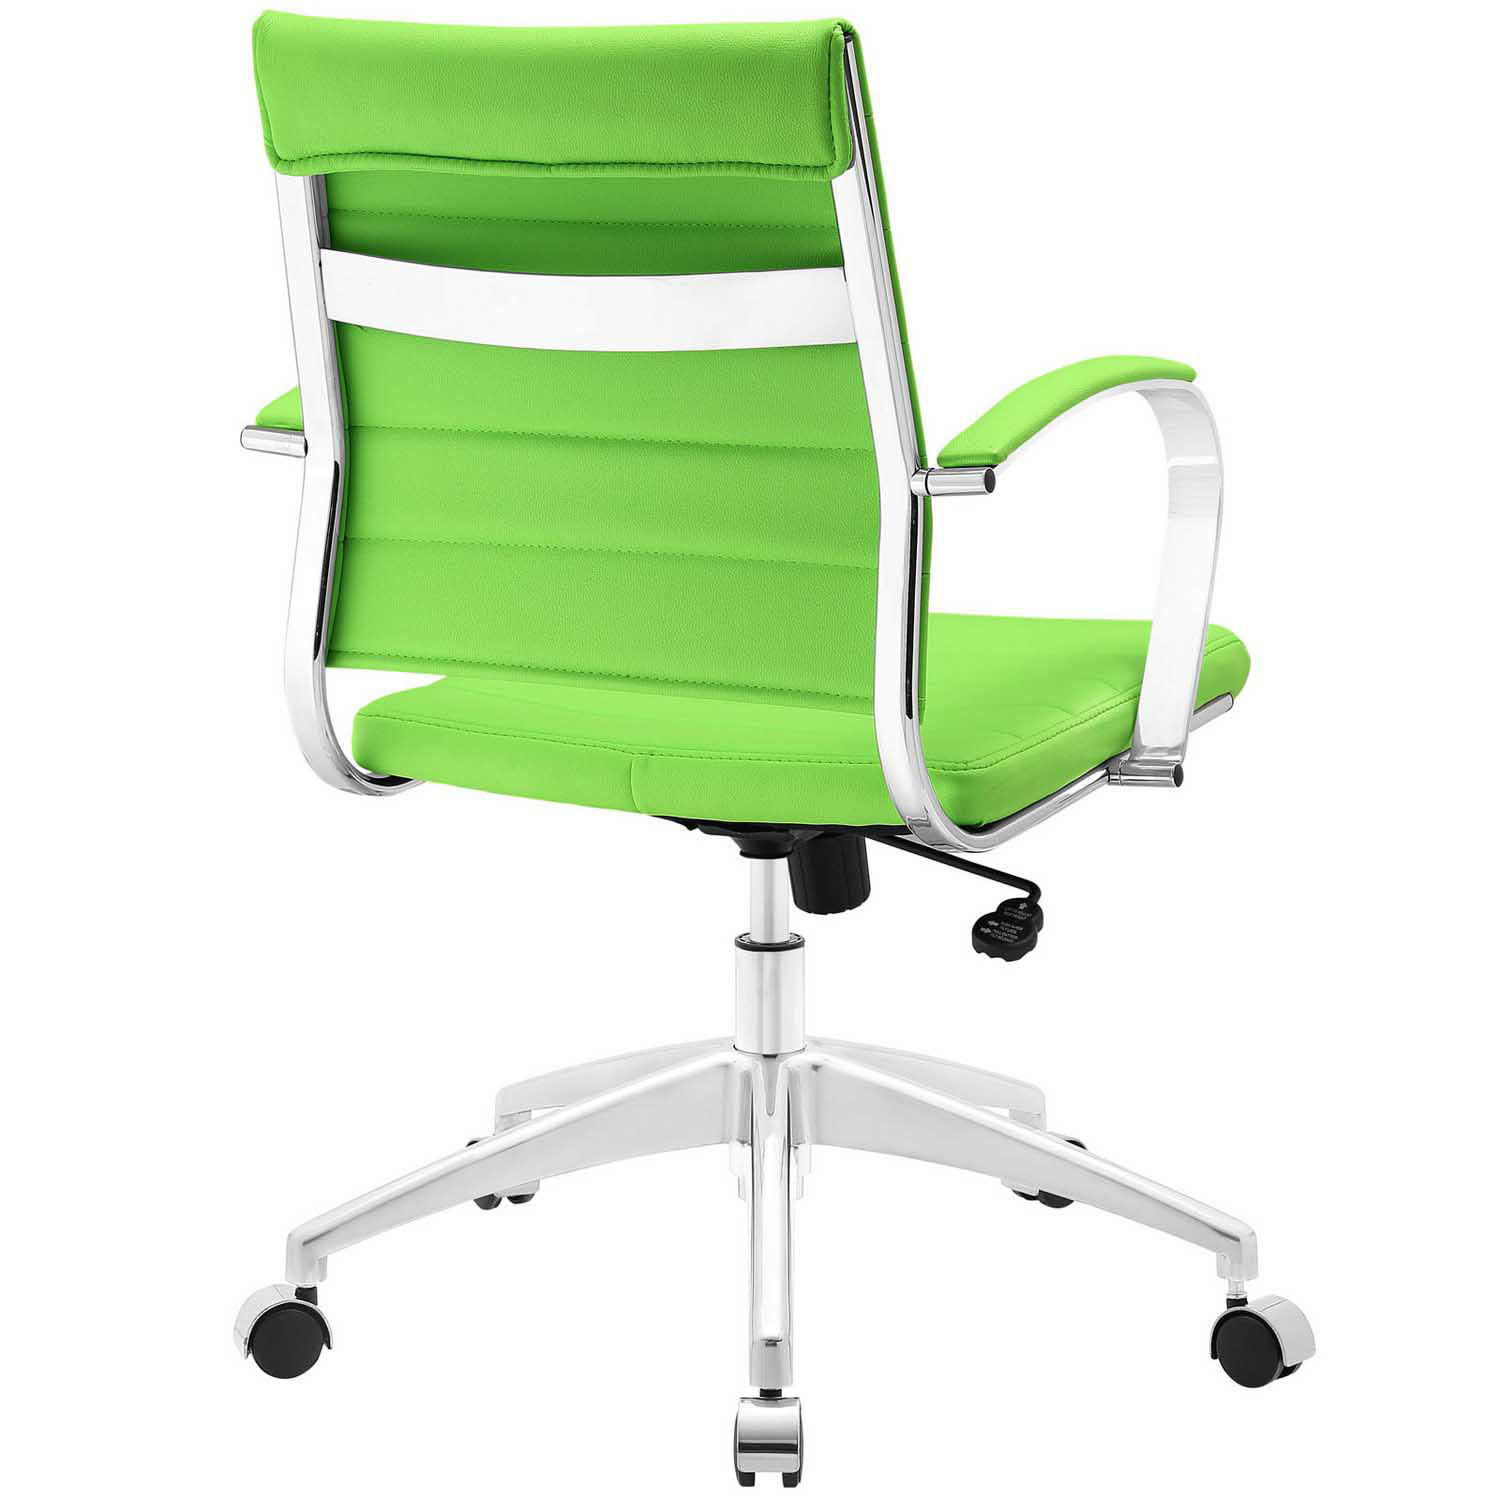 Modway Jive Mid Back Office Chair - Bright Green